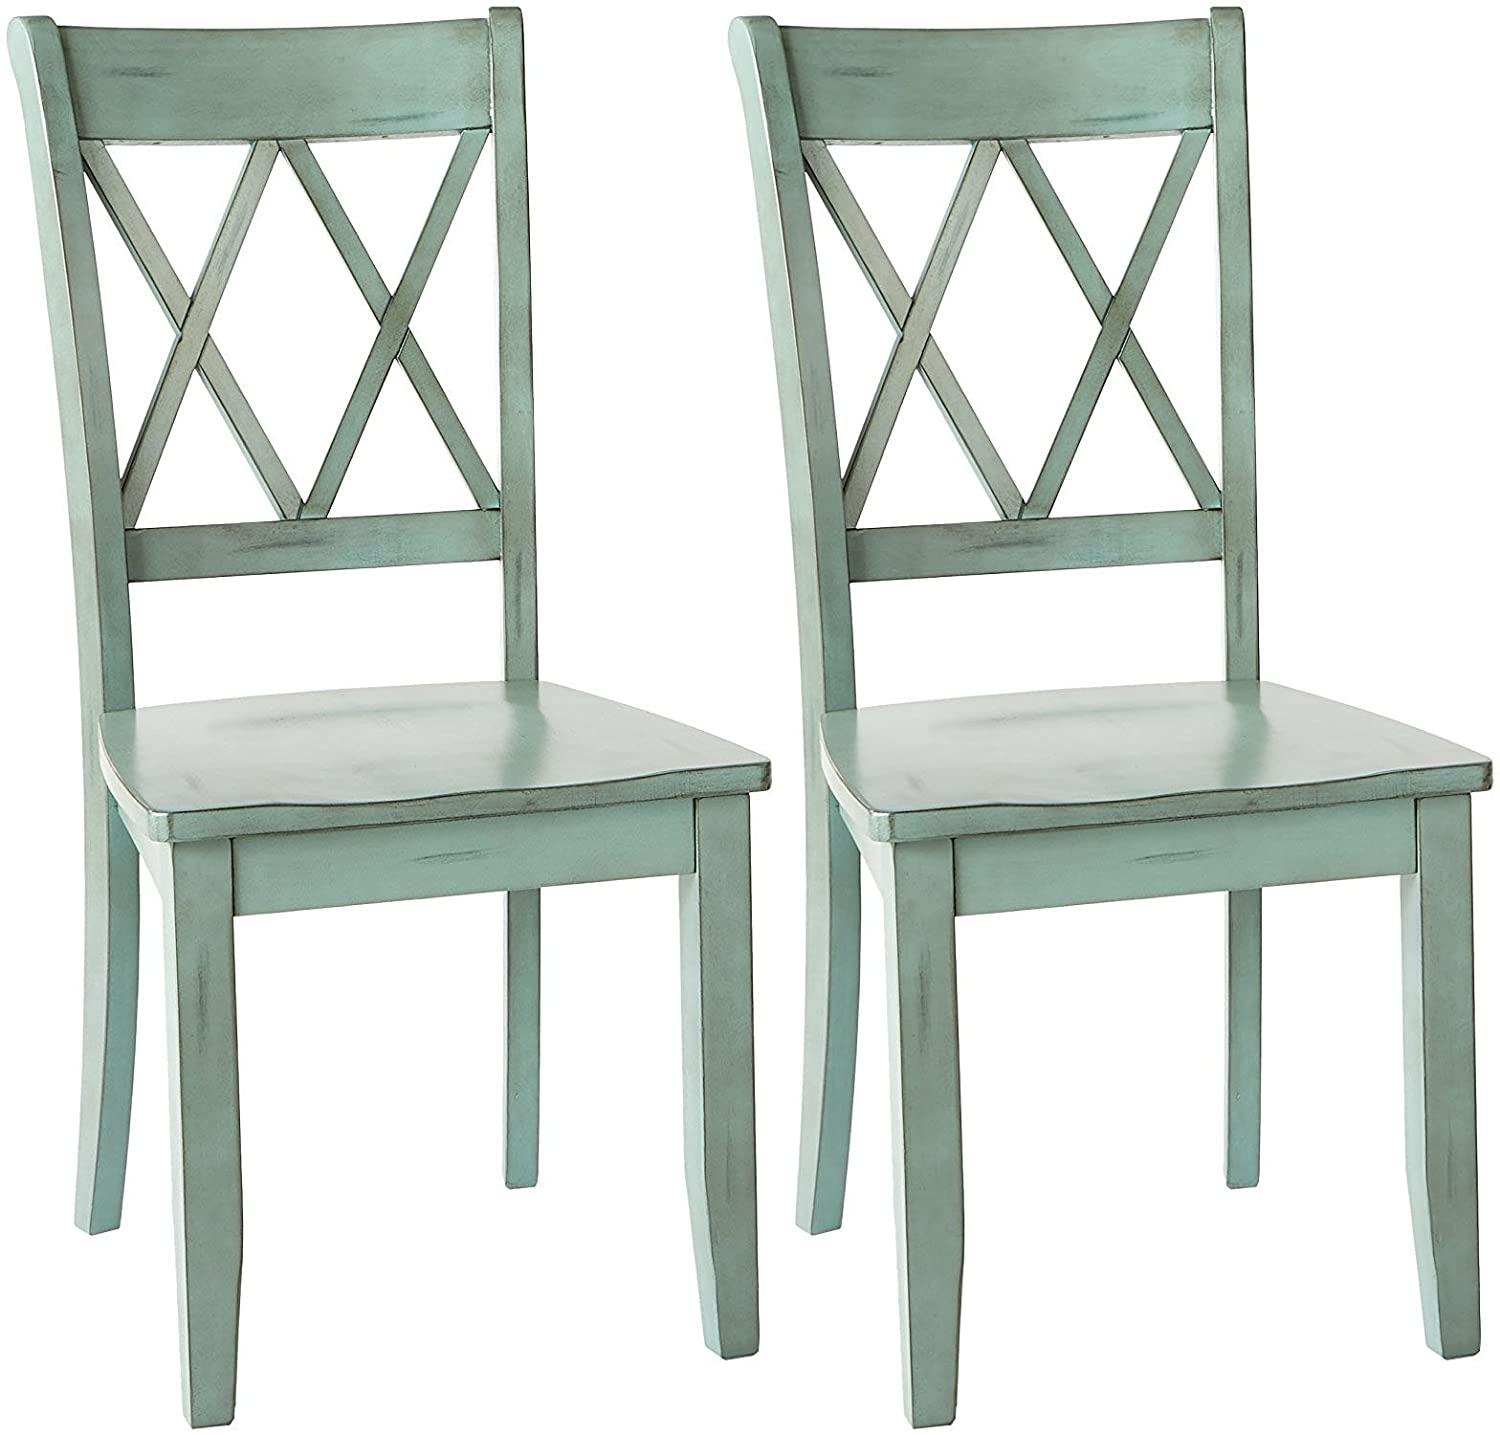 official photos 6f944 bce1b Ashley Furniture Signature Design - Mestler Dining Room Side Chair - Wood  Seat - Set of 2 - Blue/Green